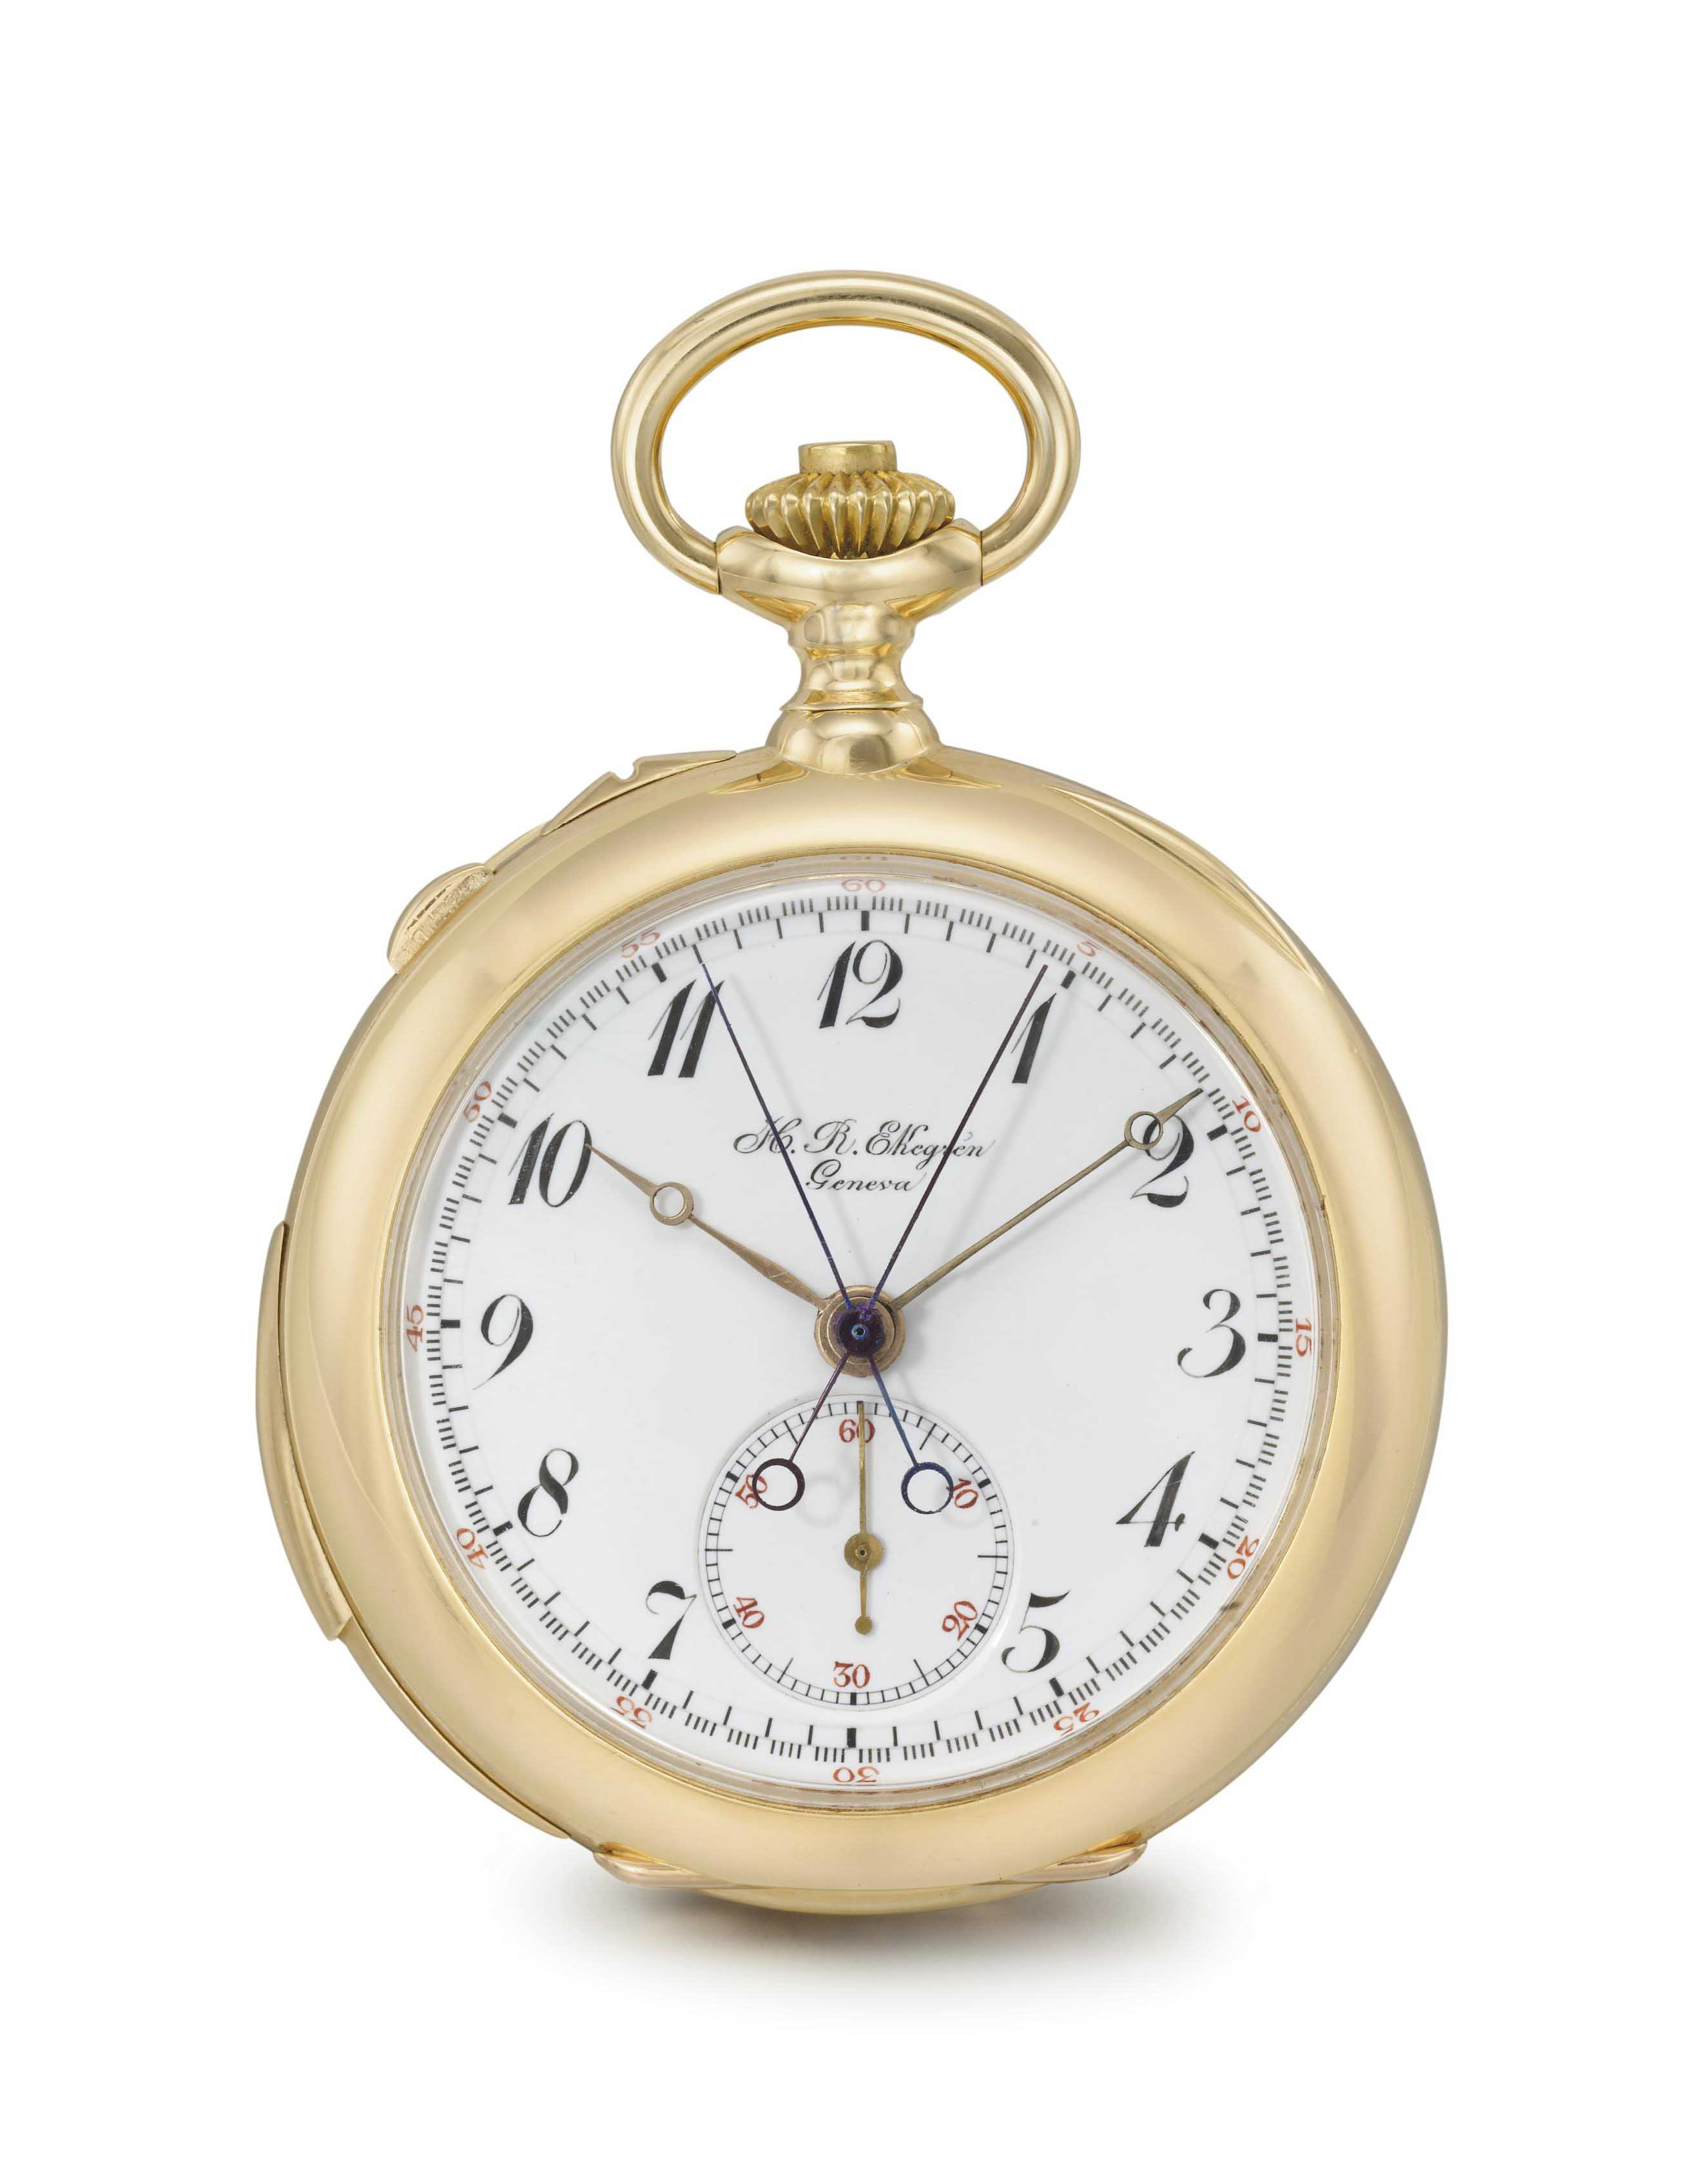 H.R. Ekegren. A fine 18K gold openface minute repeating split seconds chronograph keyless lever watch